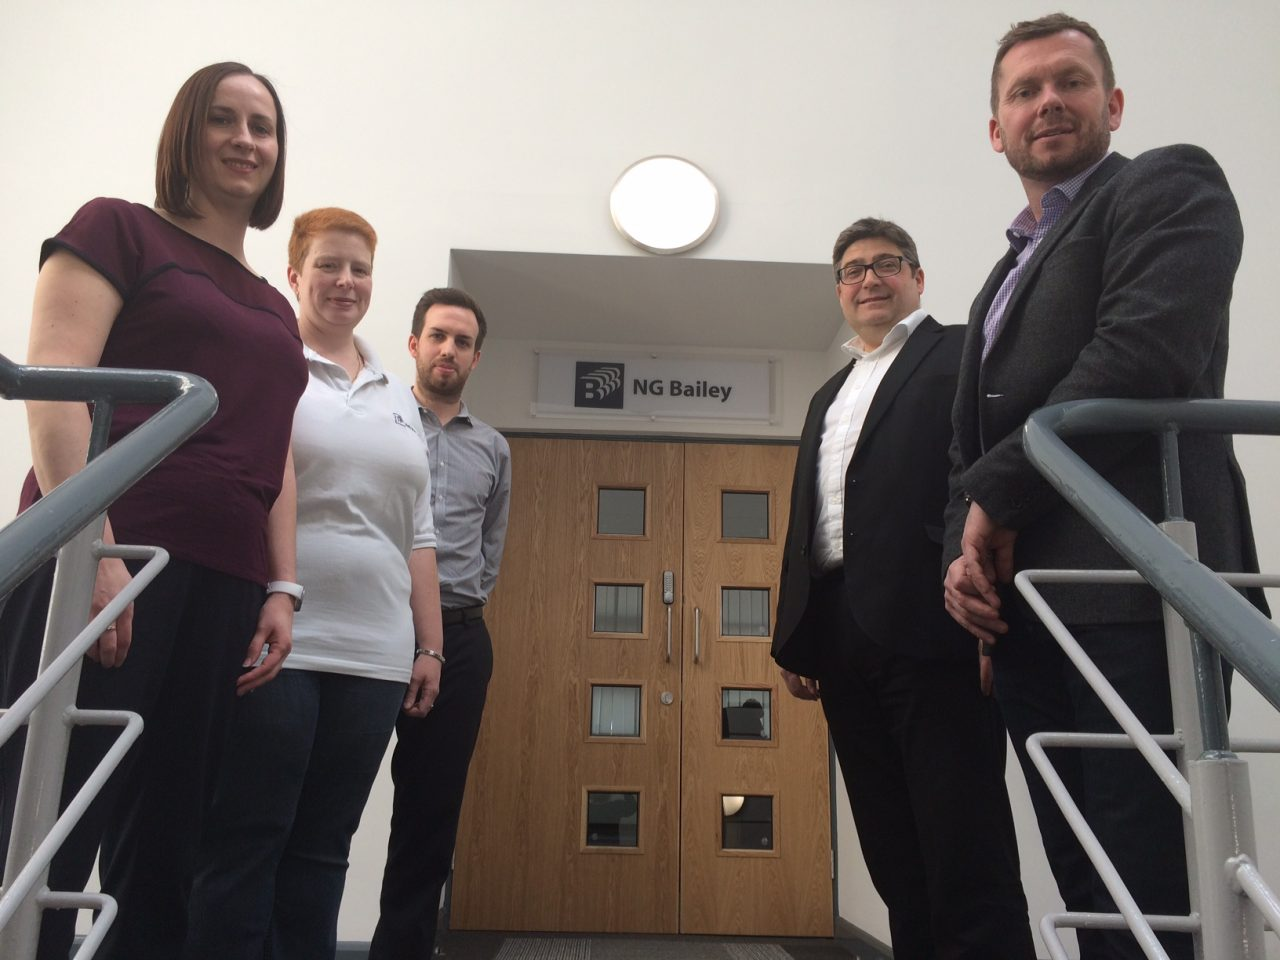 (left/right) Lisa Mitchell, Gaynor Smallwood and Adam Scott of NG Bailey with Peter Whiteley of Knight Frank and Richard Burns, director at ARBA Group.